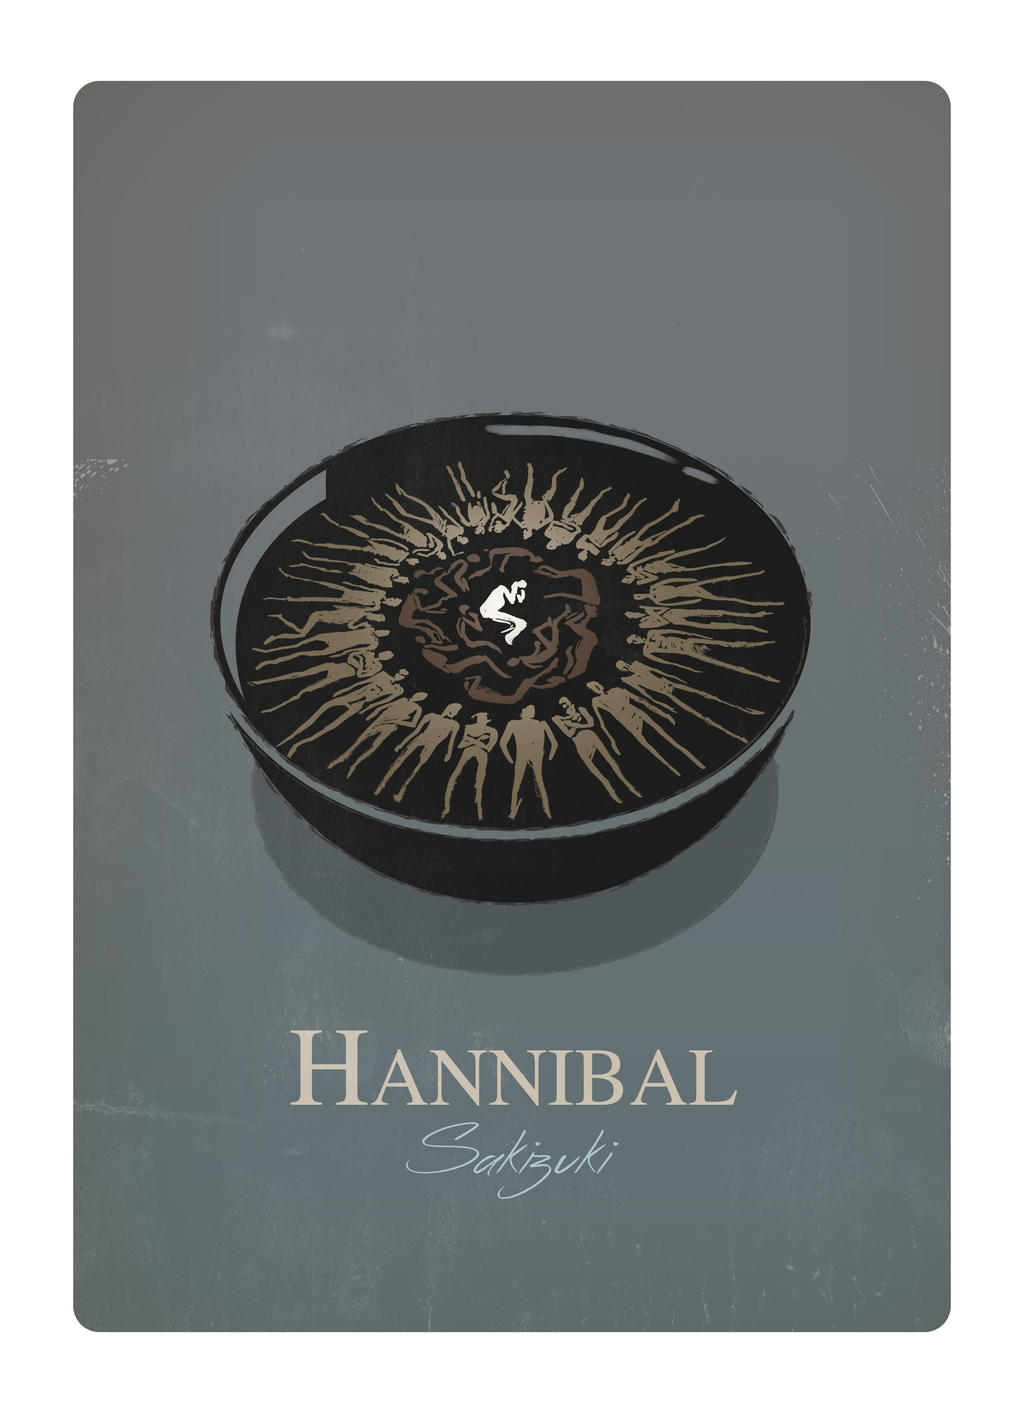 Hannibal S02E02 by alexsantalo